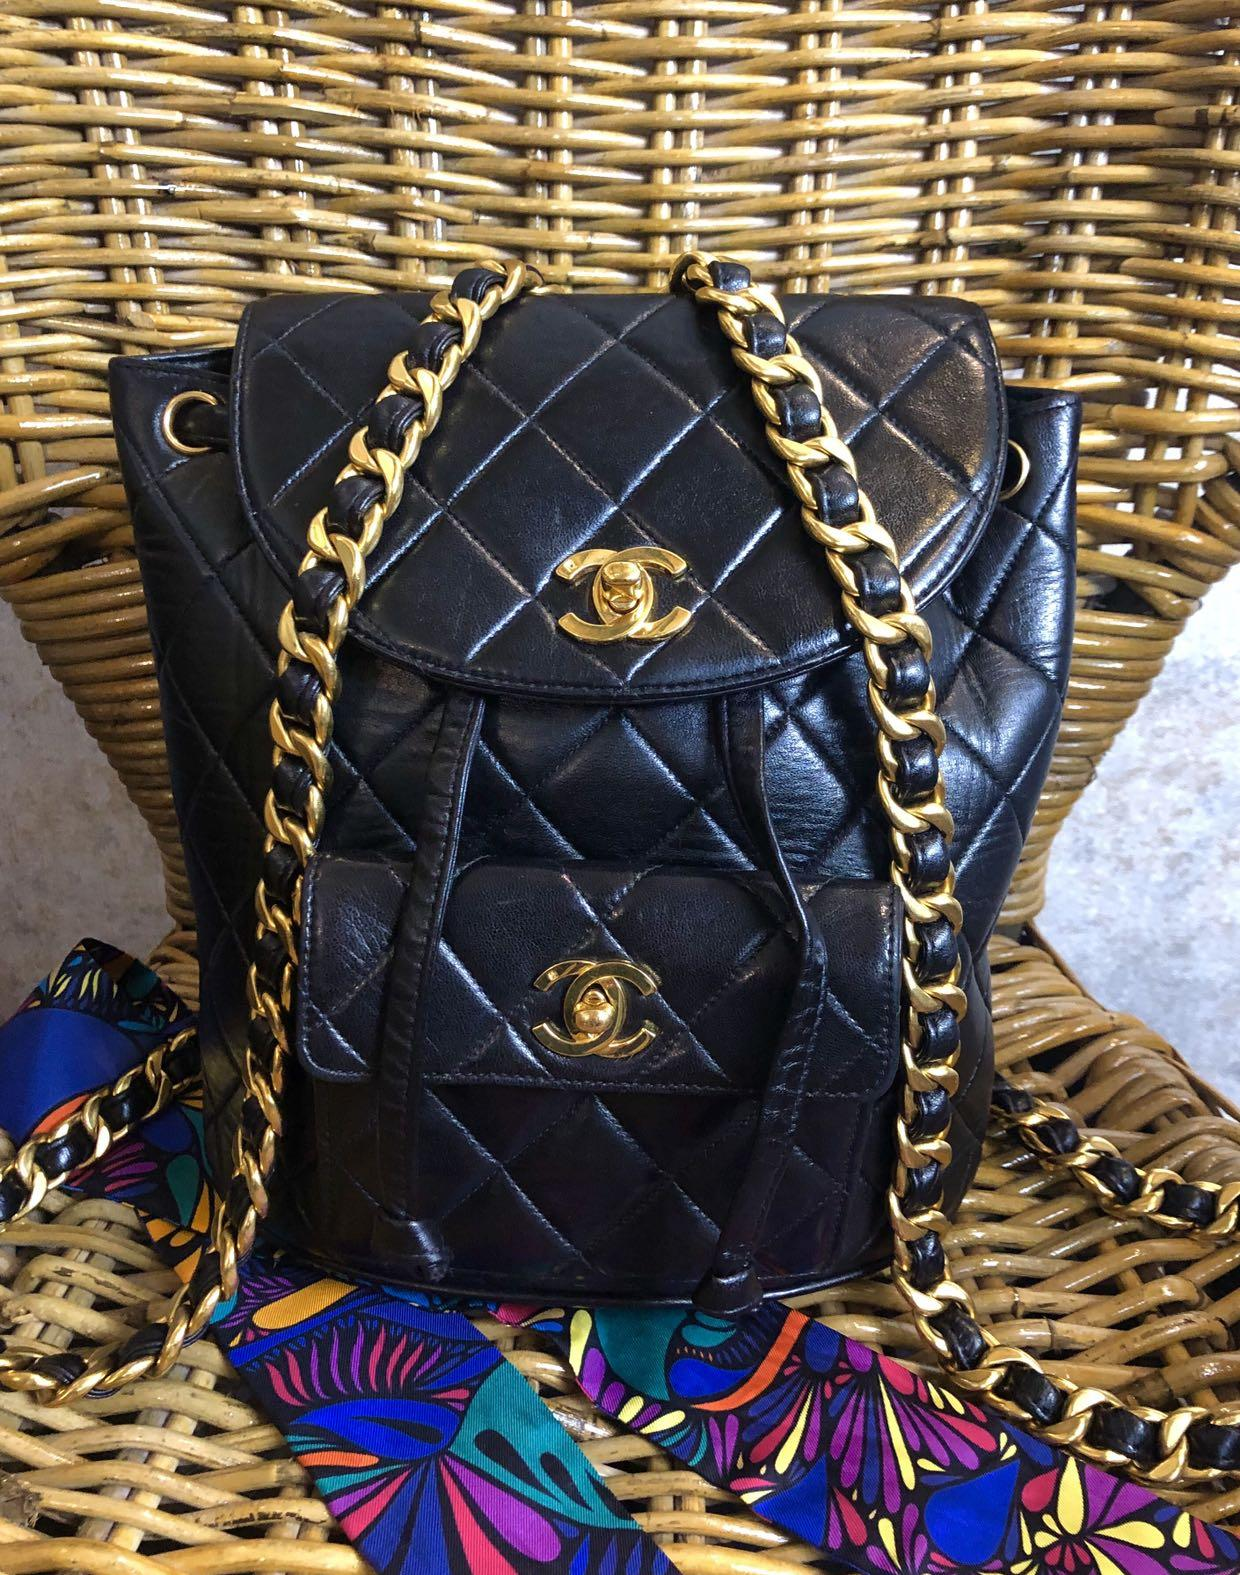 Authentic Chanel Vintage Backpack